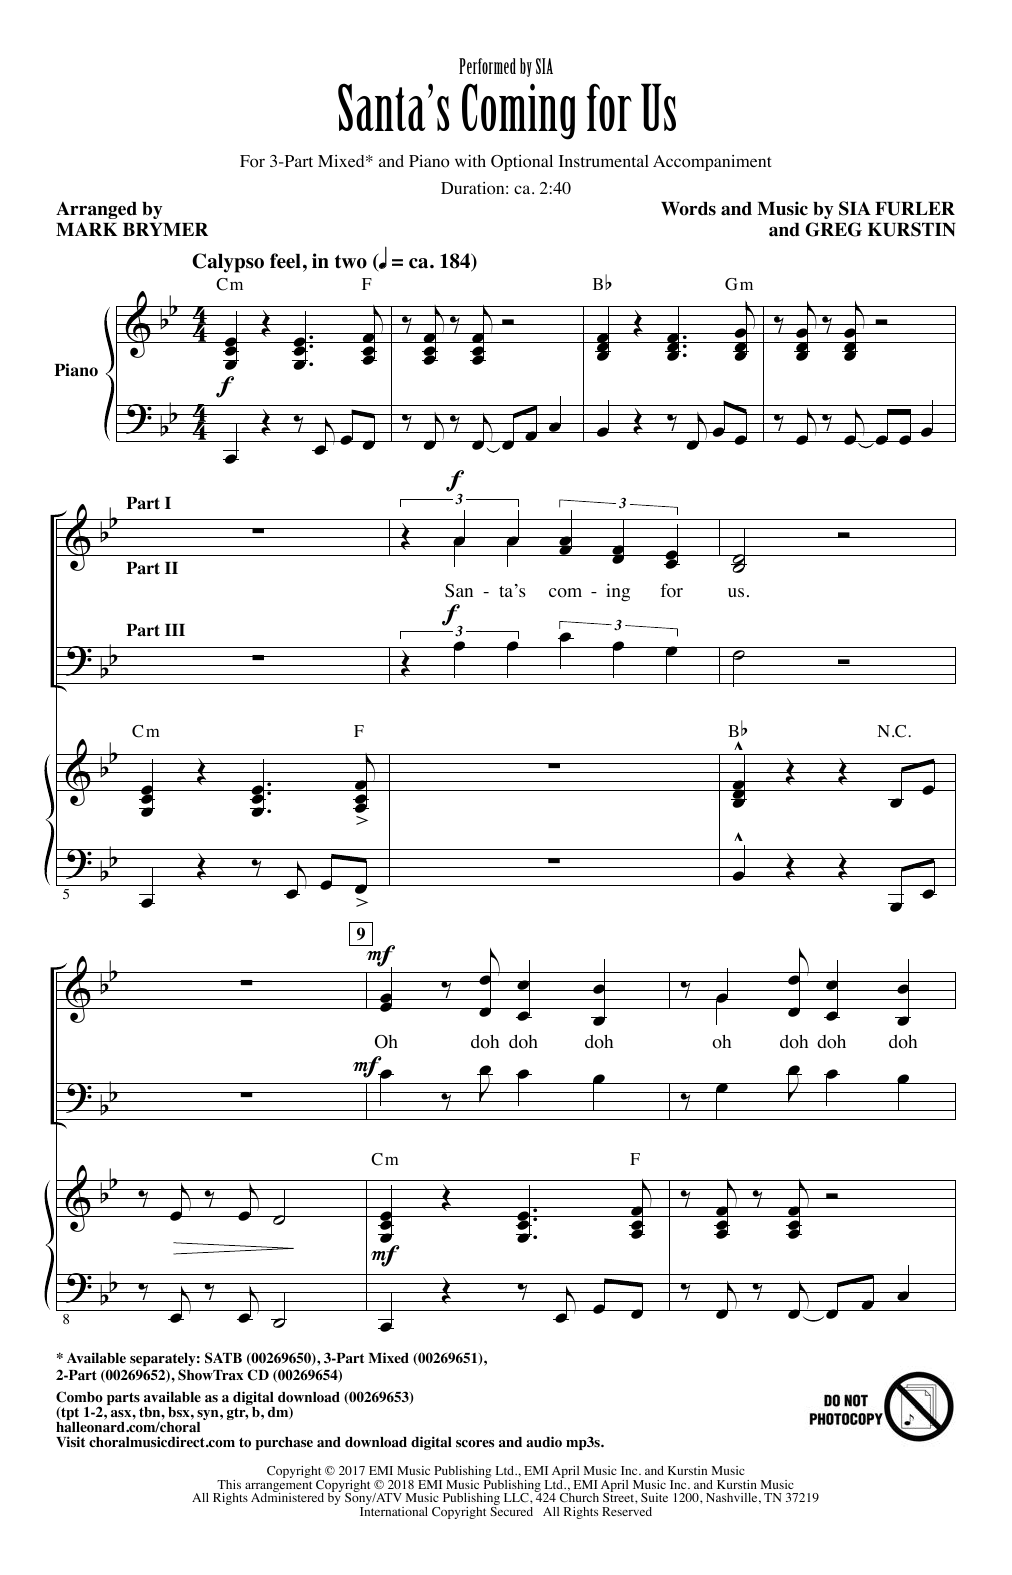 Sia Santa's Coming For Us (arr. Mark Brymer) sheet music notes and chords